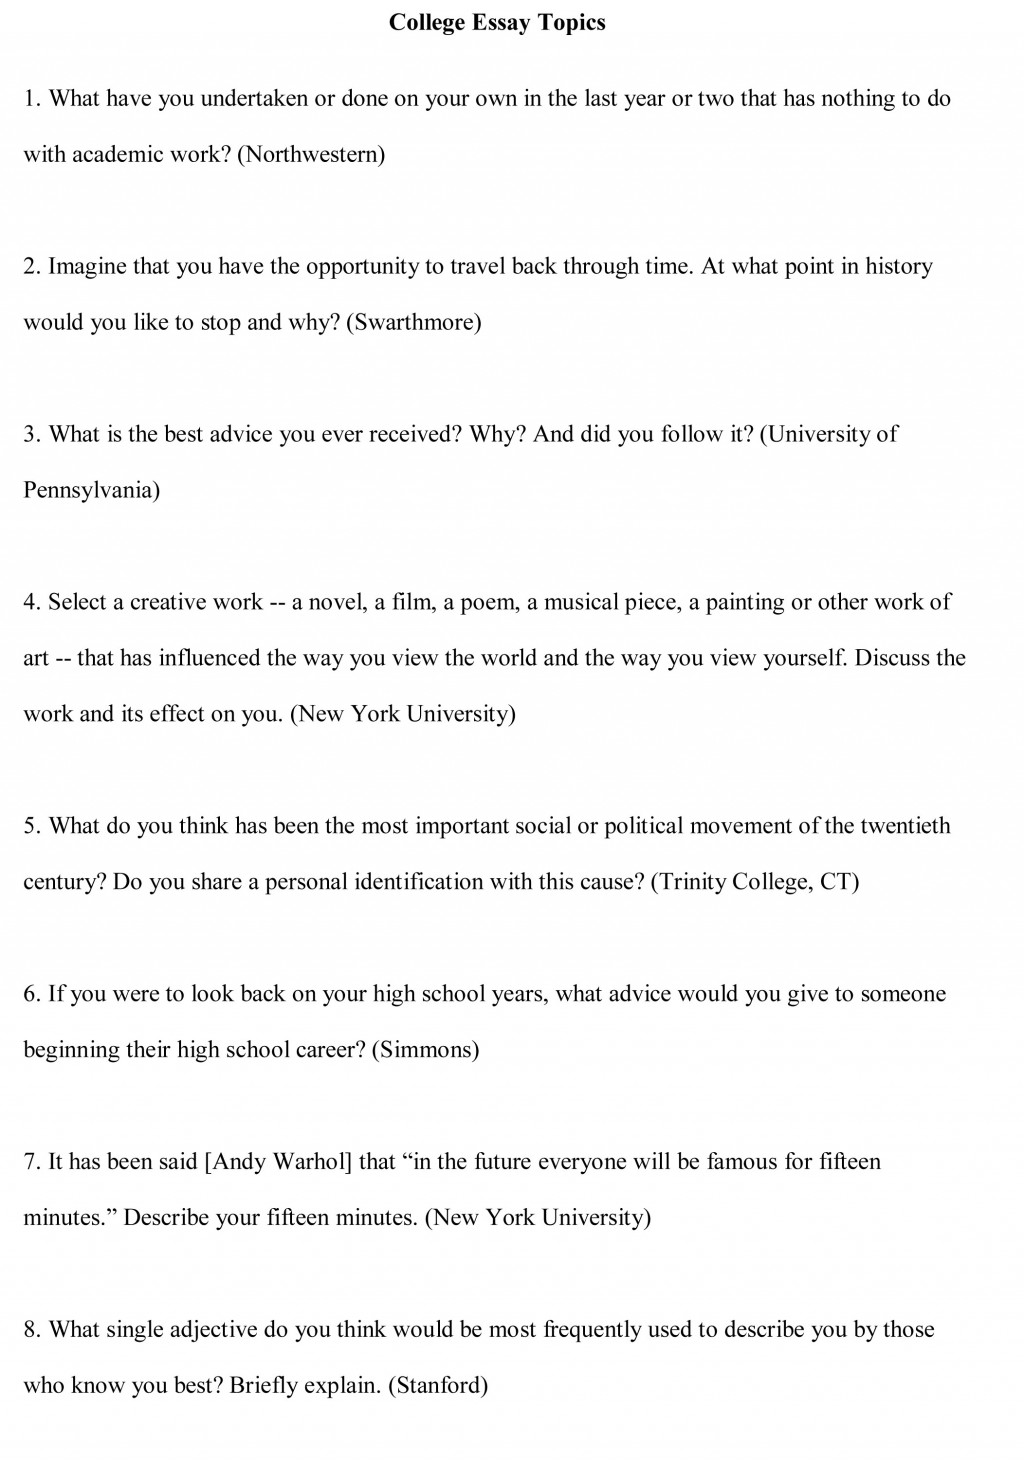 010 College Essay Topics Free Sample Example For Unbelievable An Interesting Expository Large